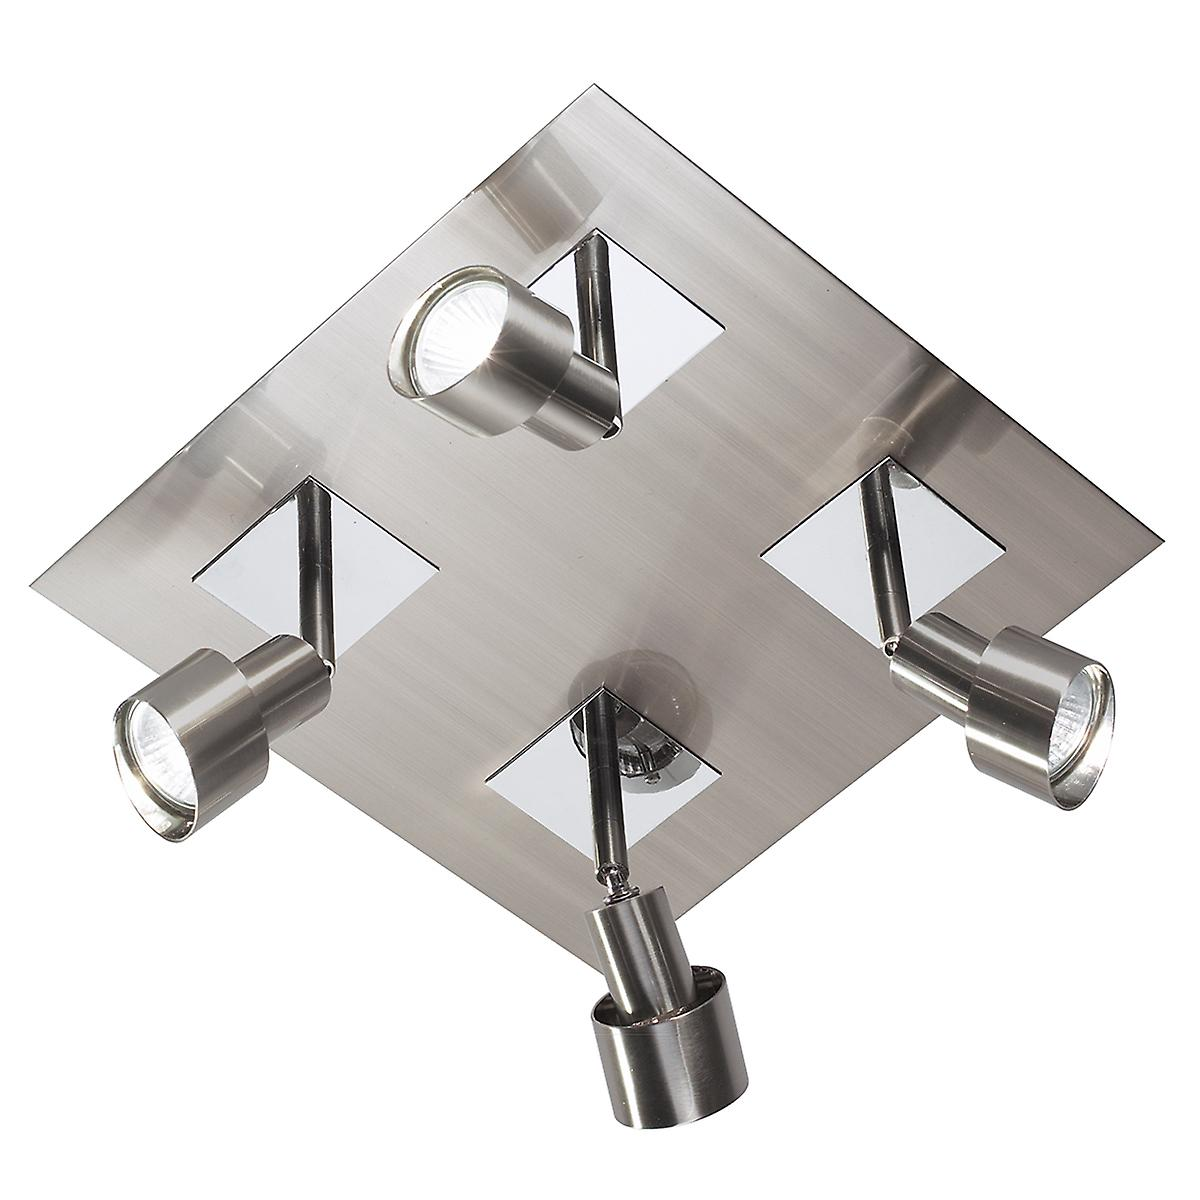 Dar FUT8546 Futura 4 Light Halogen Ceiling Spotlight Plate In Satin Chrome